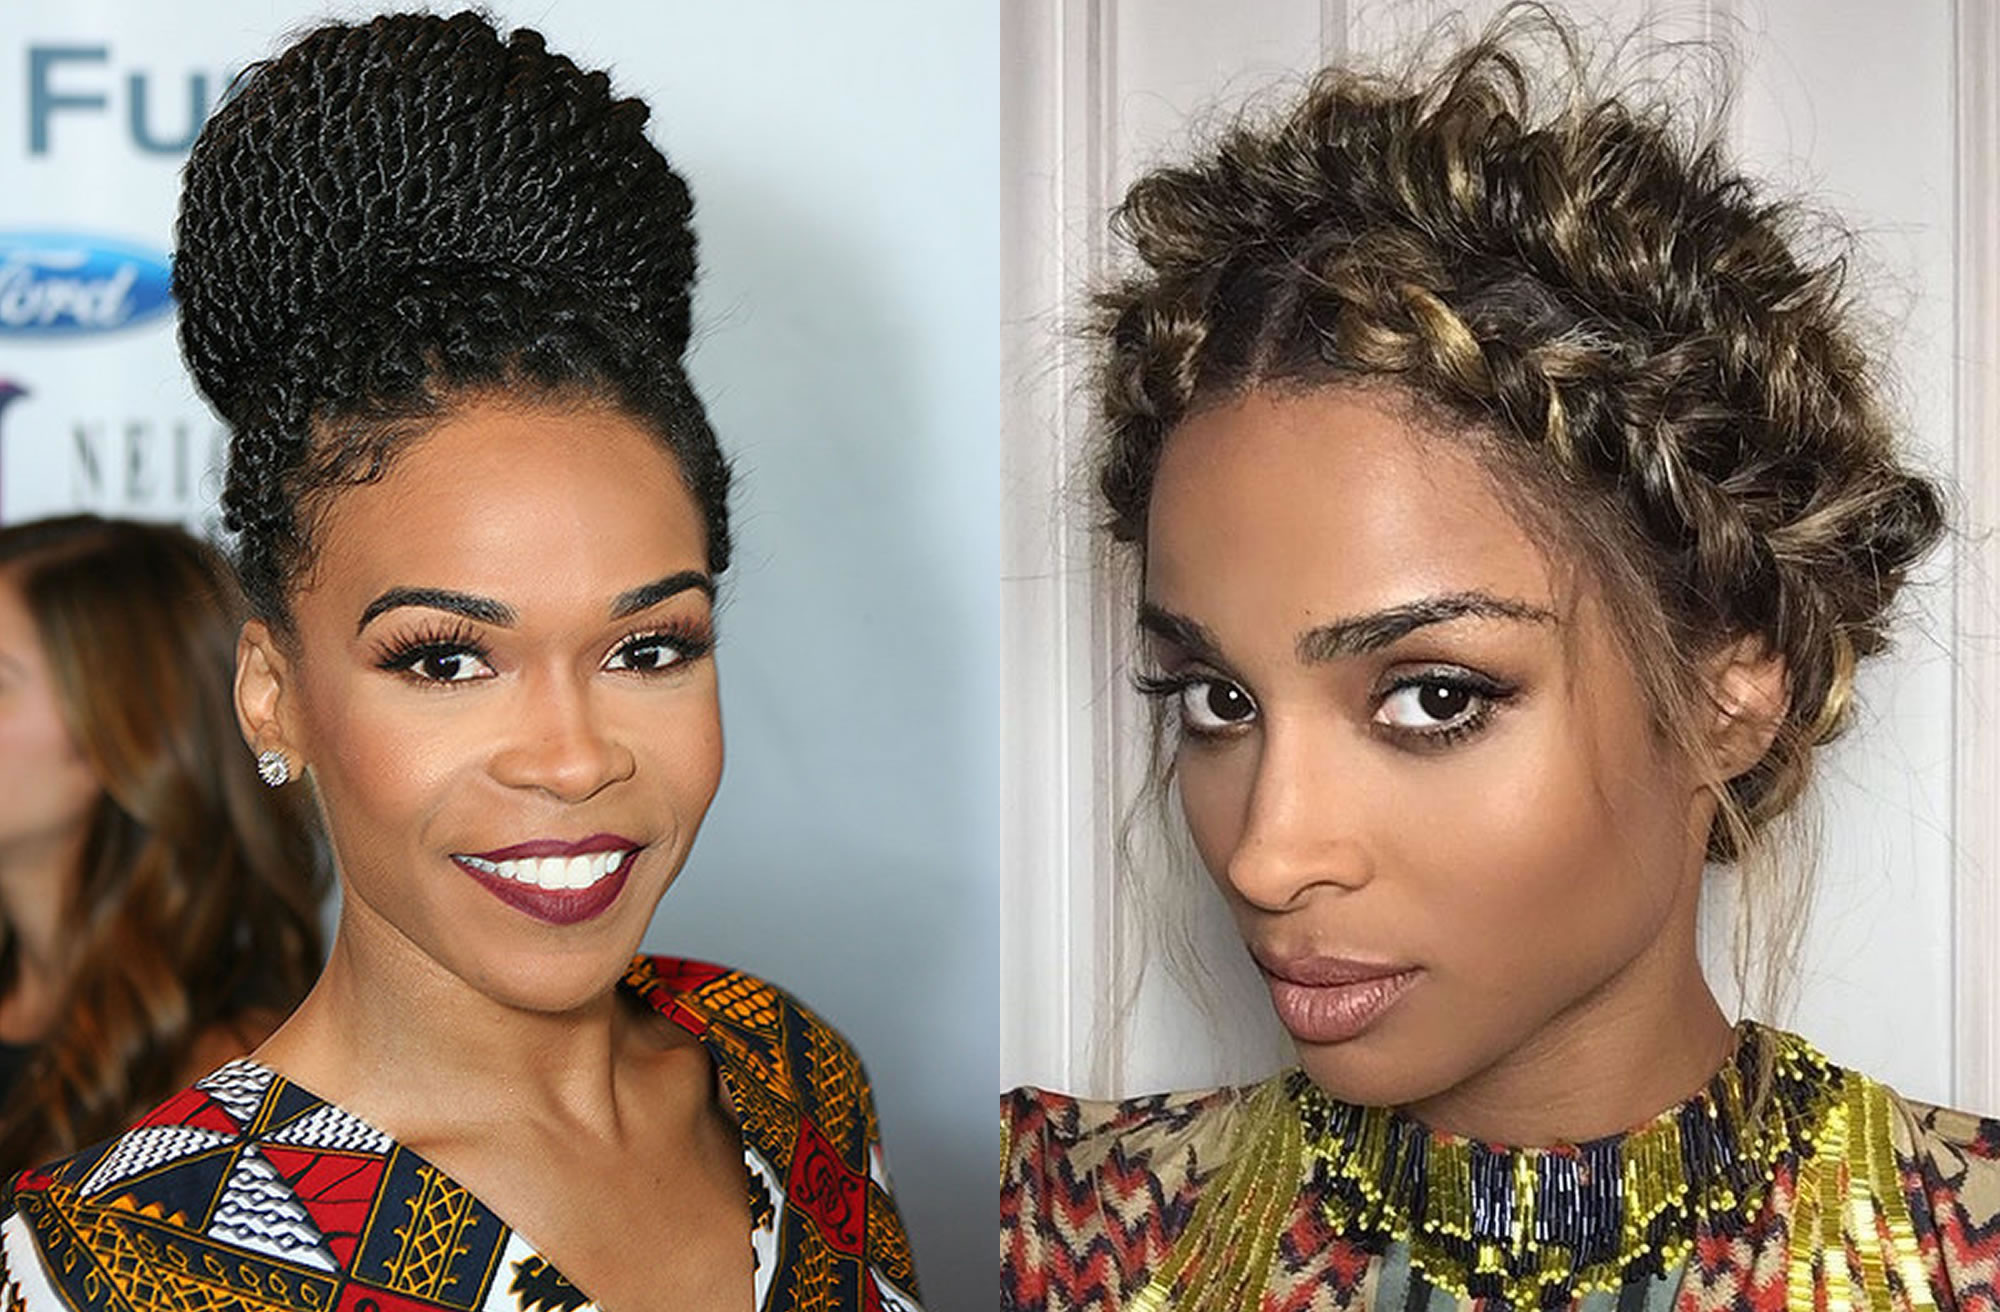 Best ideas about New Braid Hairstyles 2019 . Save or Pin Best 30 Braided Hairstyles for Black Women 2018 2019 Now.